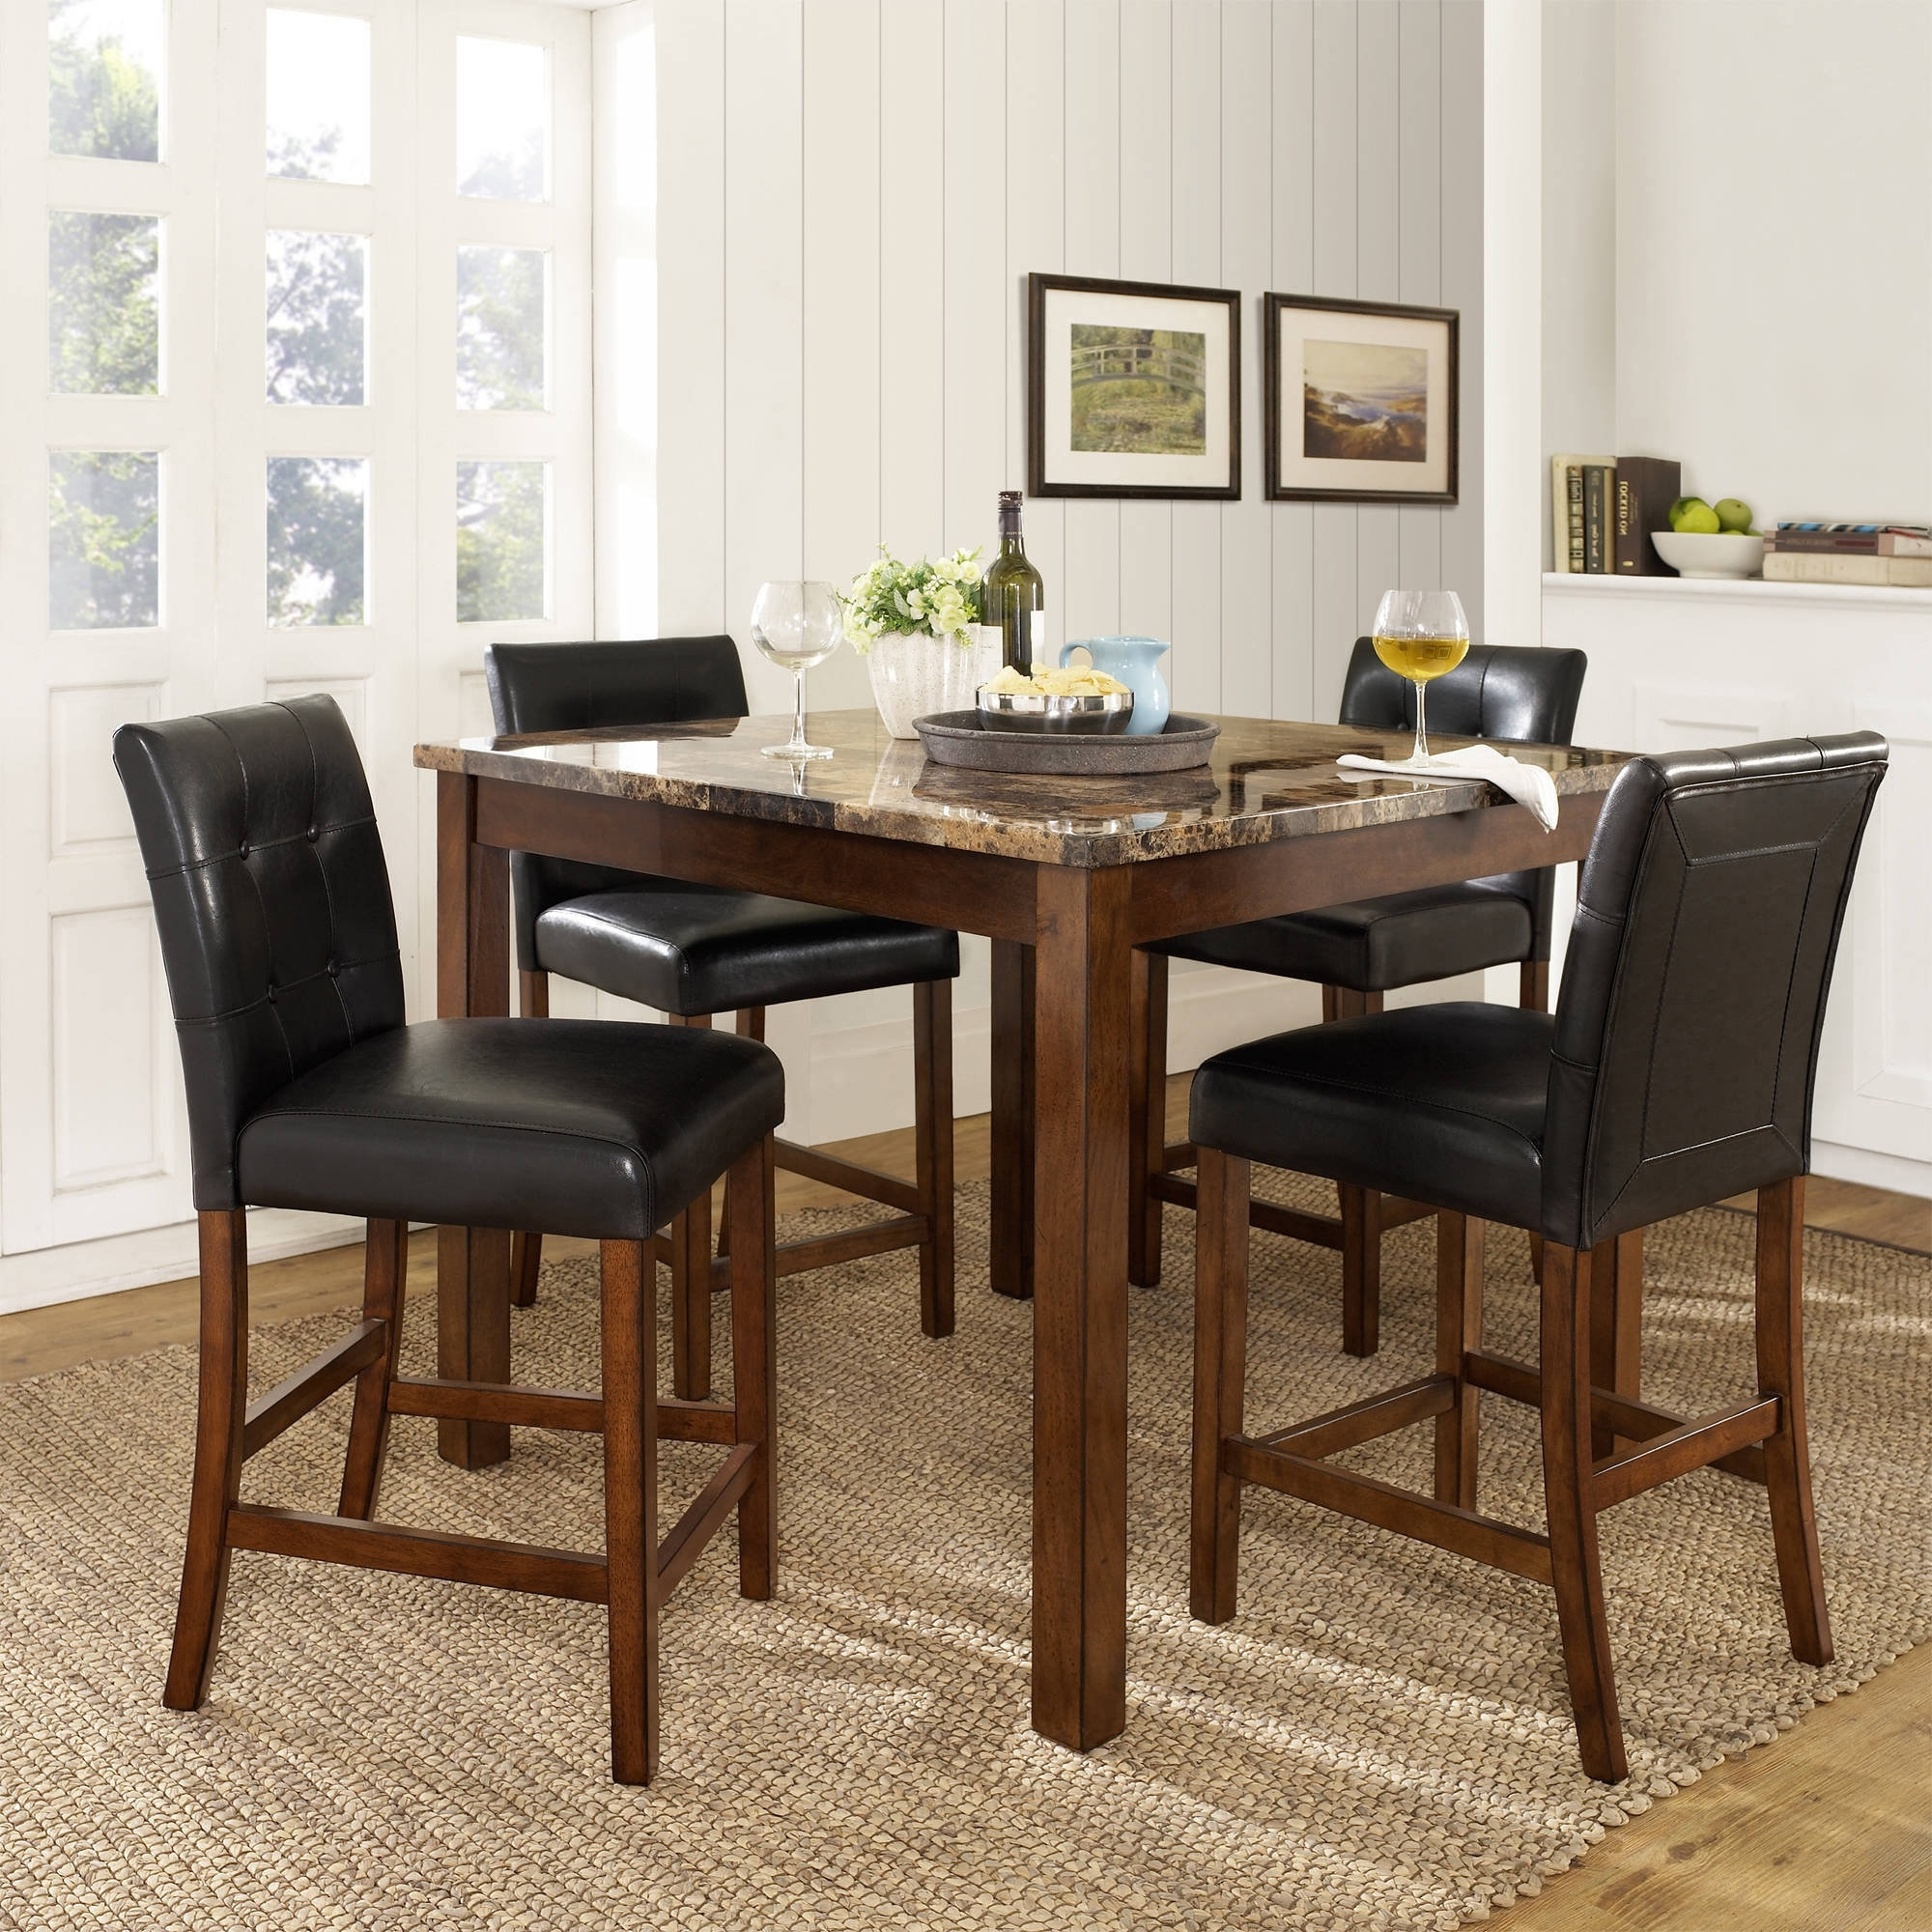 Jaxon 5 Piece Round Dining Sets With Upholstered Chairs Throughout Widely Used Dorel Living Andover 5 Piece Faux Marble Counter Height Dining Set (Gallery 18 of 25)